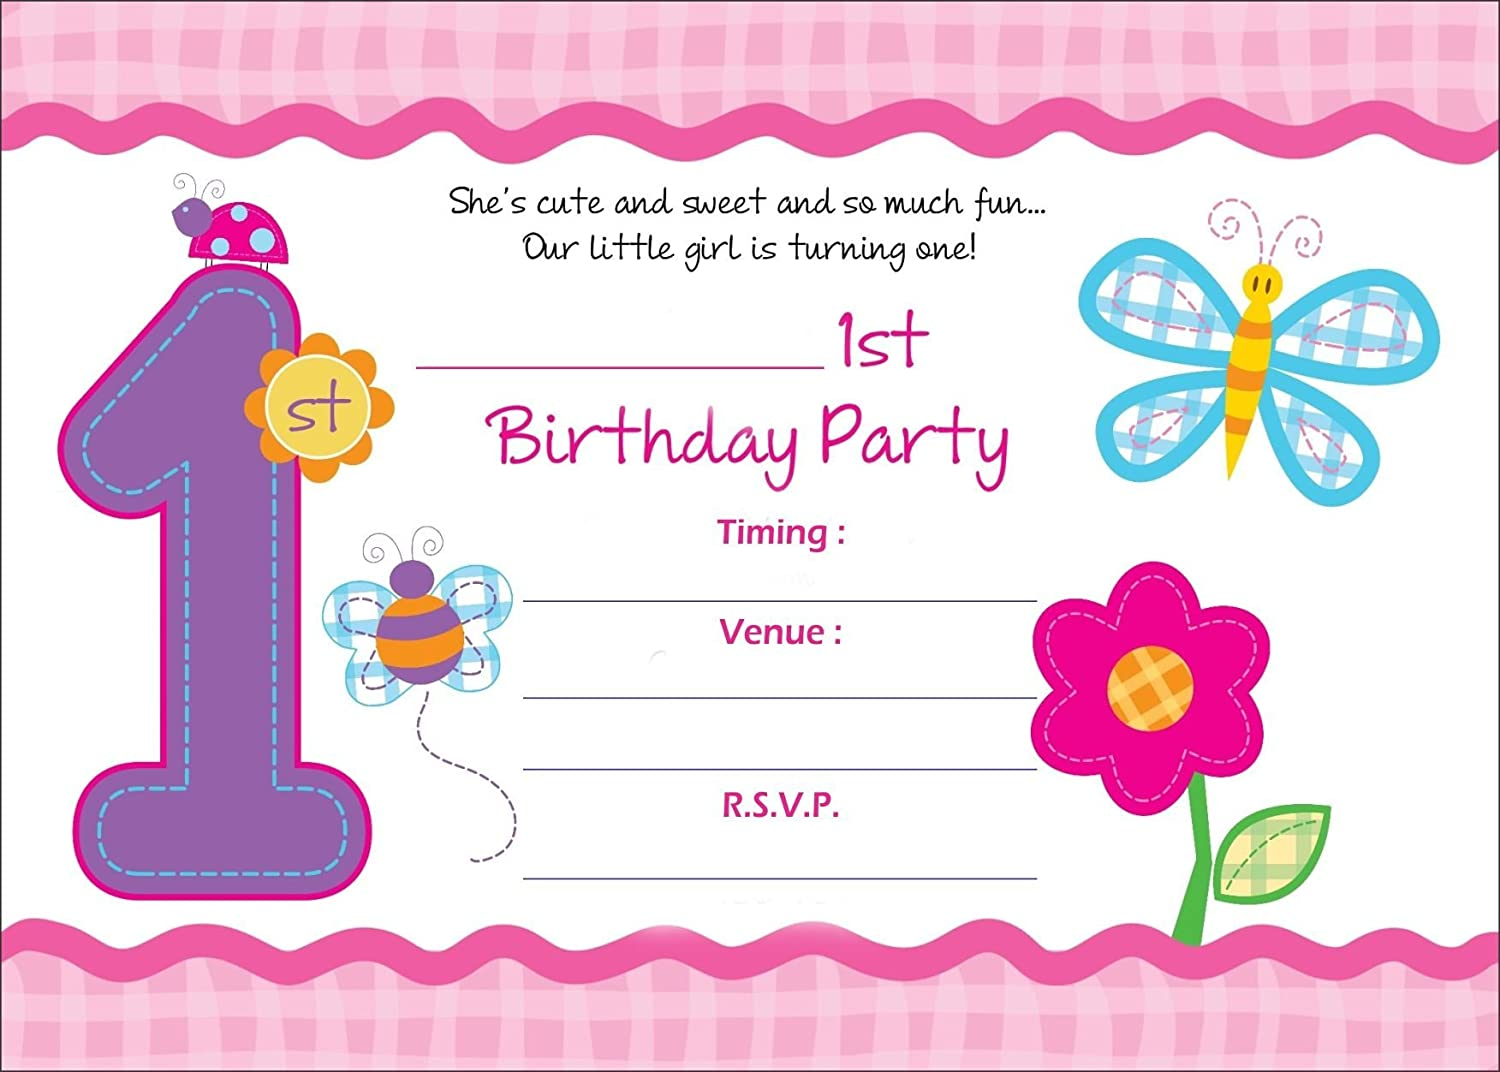 Askprints Girl S Birthday Metallic Invitation Card With Envelope 5x7 Inches Pink Bpc 017 Pack Of 25